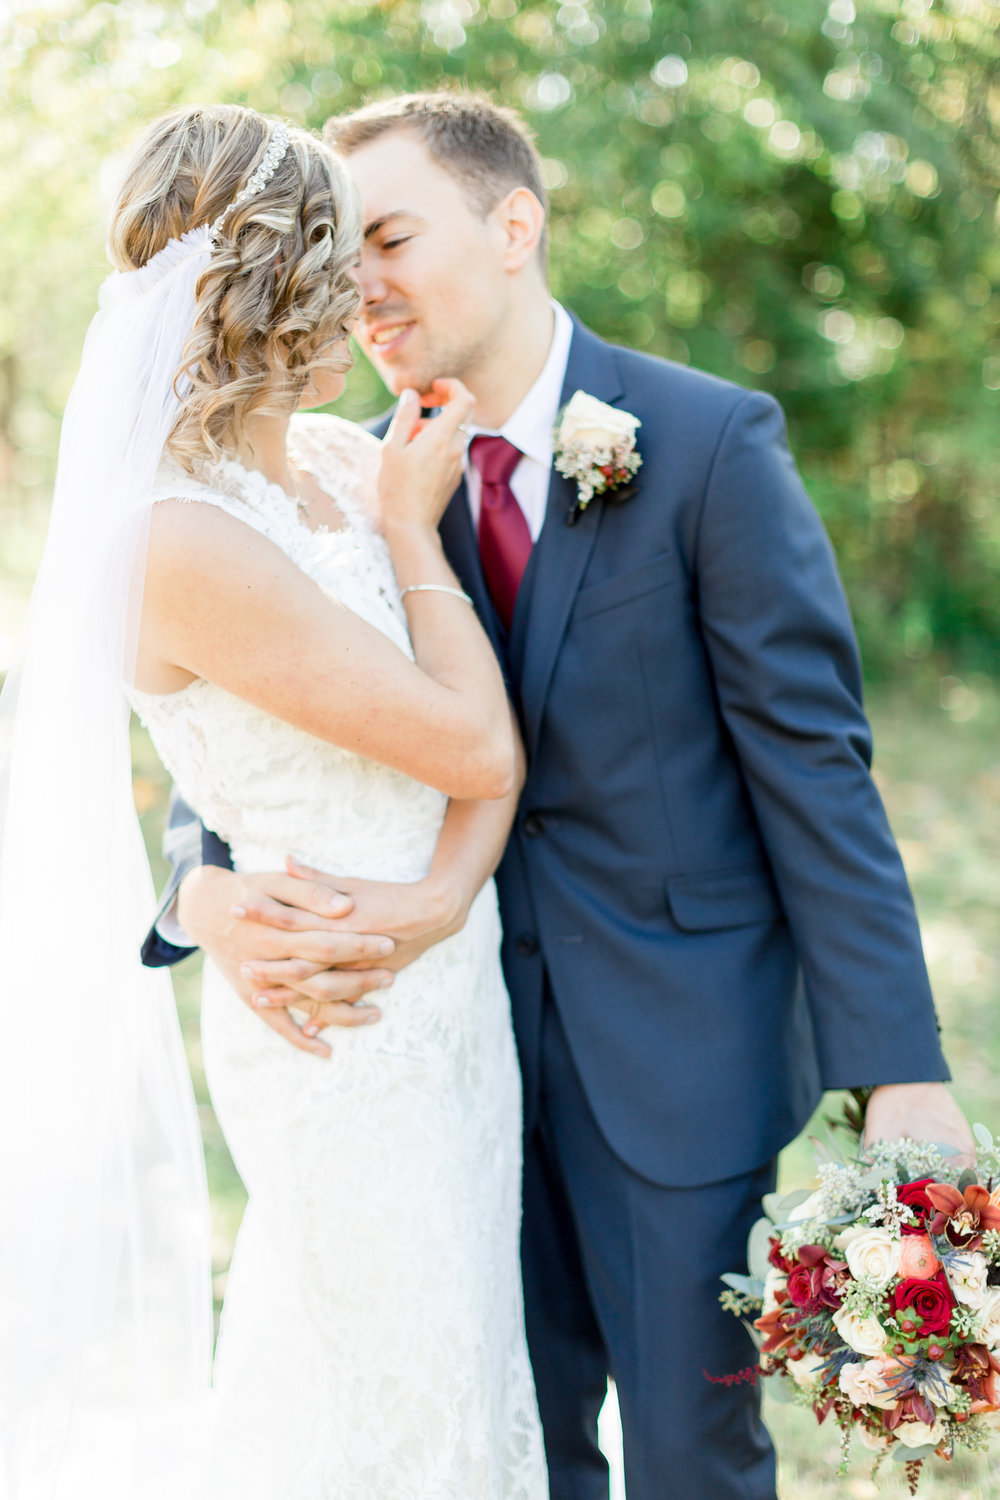 Abigail Berge Photography_RedmanWedding-95.jpg